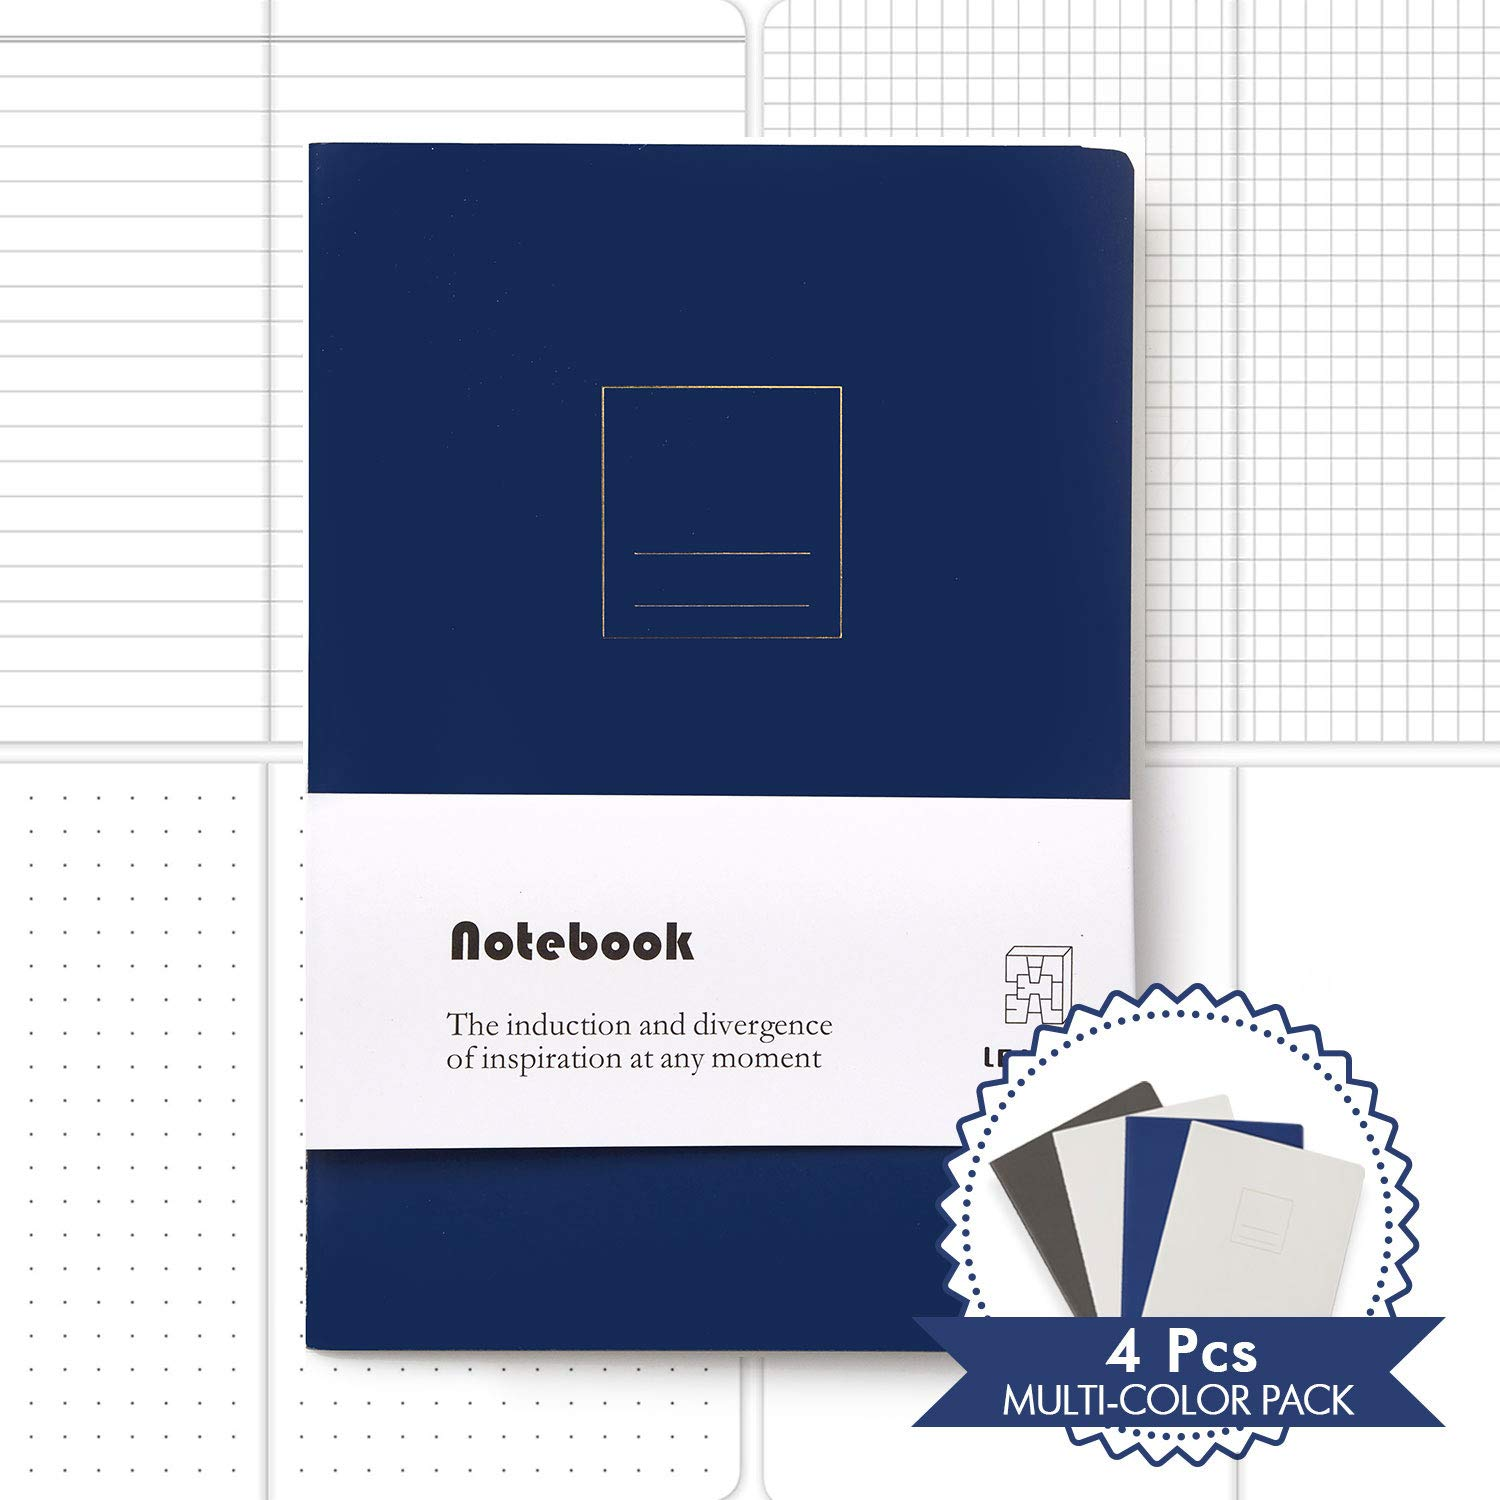 Composition Notebook - Dotted/Blank / Lined/Grid Set-4 Unique Designed – Notebook Gift for Adult & Kids - Great for Writing/Sketching in Office/School/Home for Science/Social Study Works (4 Pack)